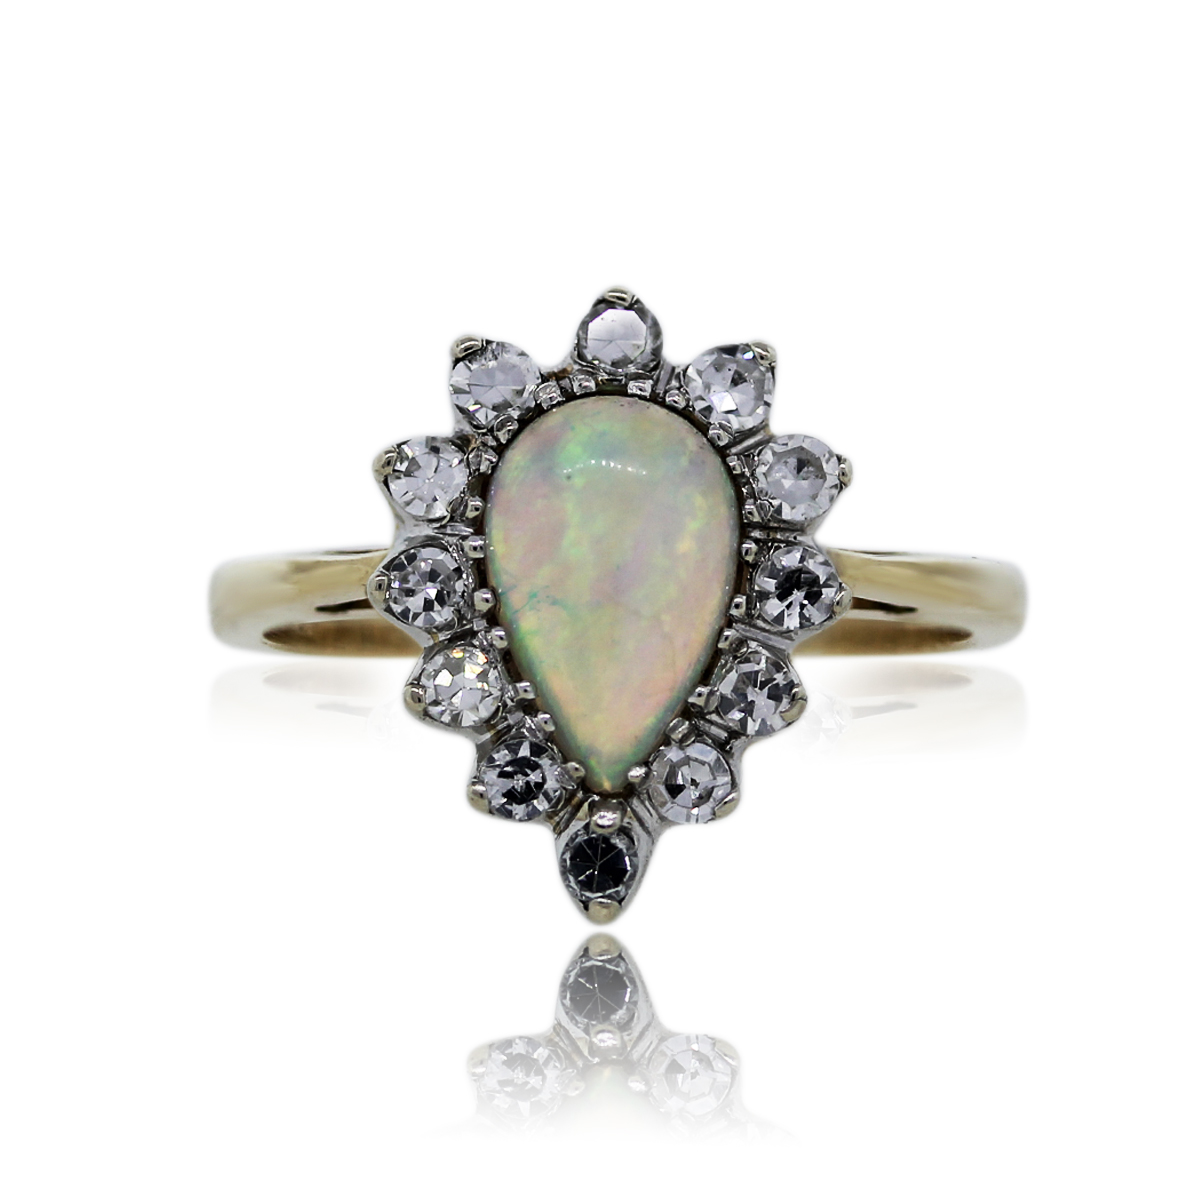 You are Viewing this Opal and Diamond Cocktail Ring